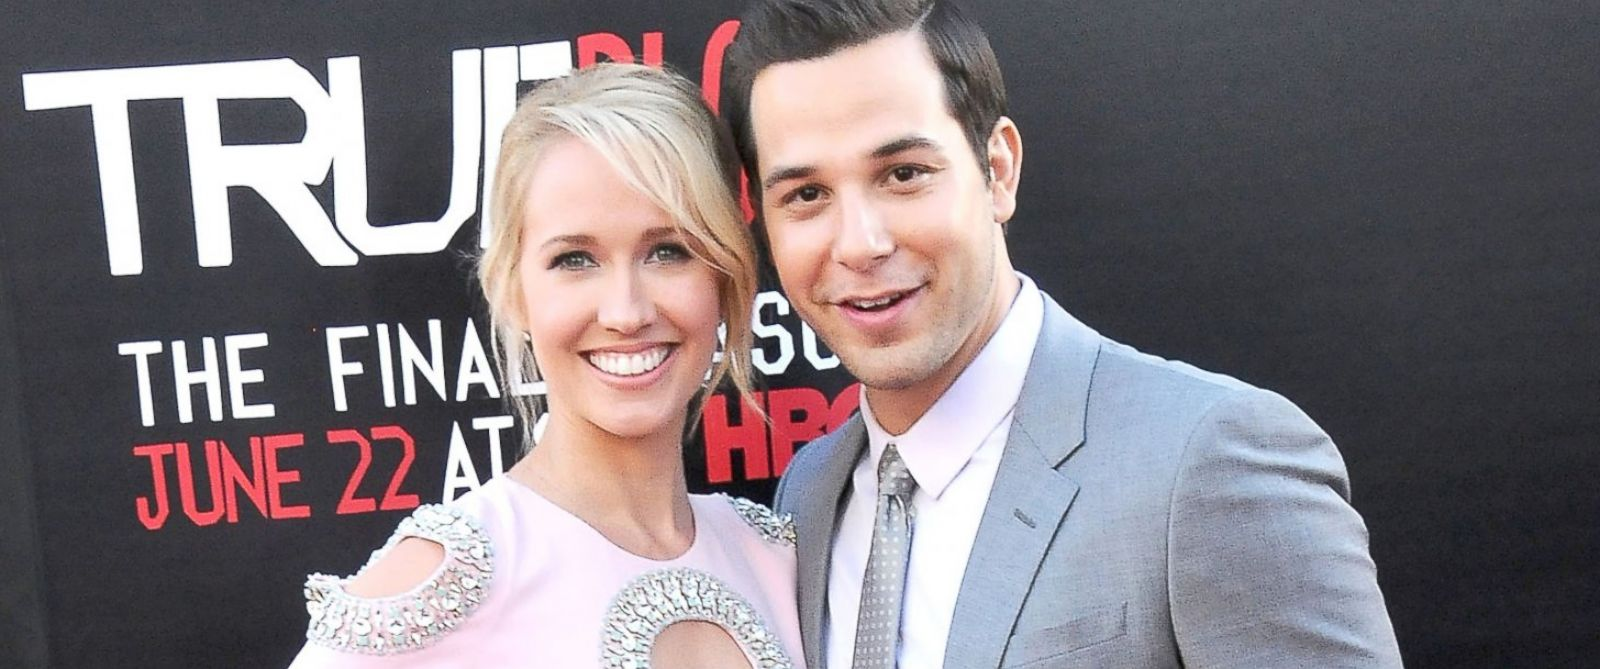 PHOTO: Anna Camp and actor Skylar Astin arrive at HBOs True Blood Final Season Premiere, June 17, 2014, at TCL Chinese Theatre in Hollywood, Calif.